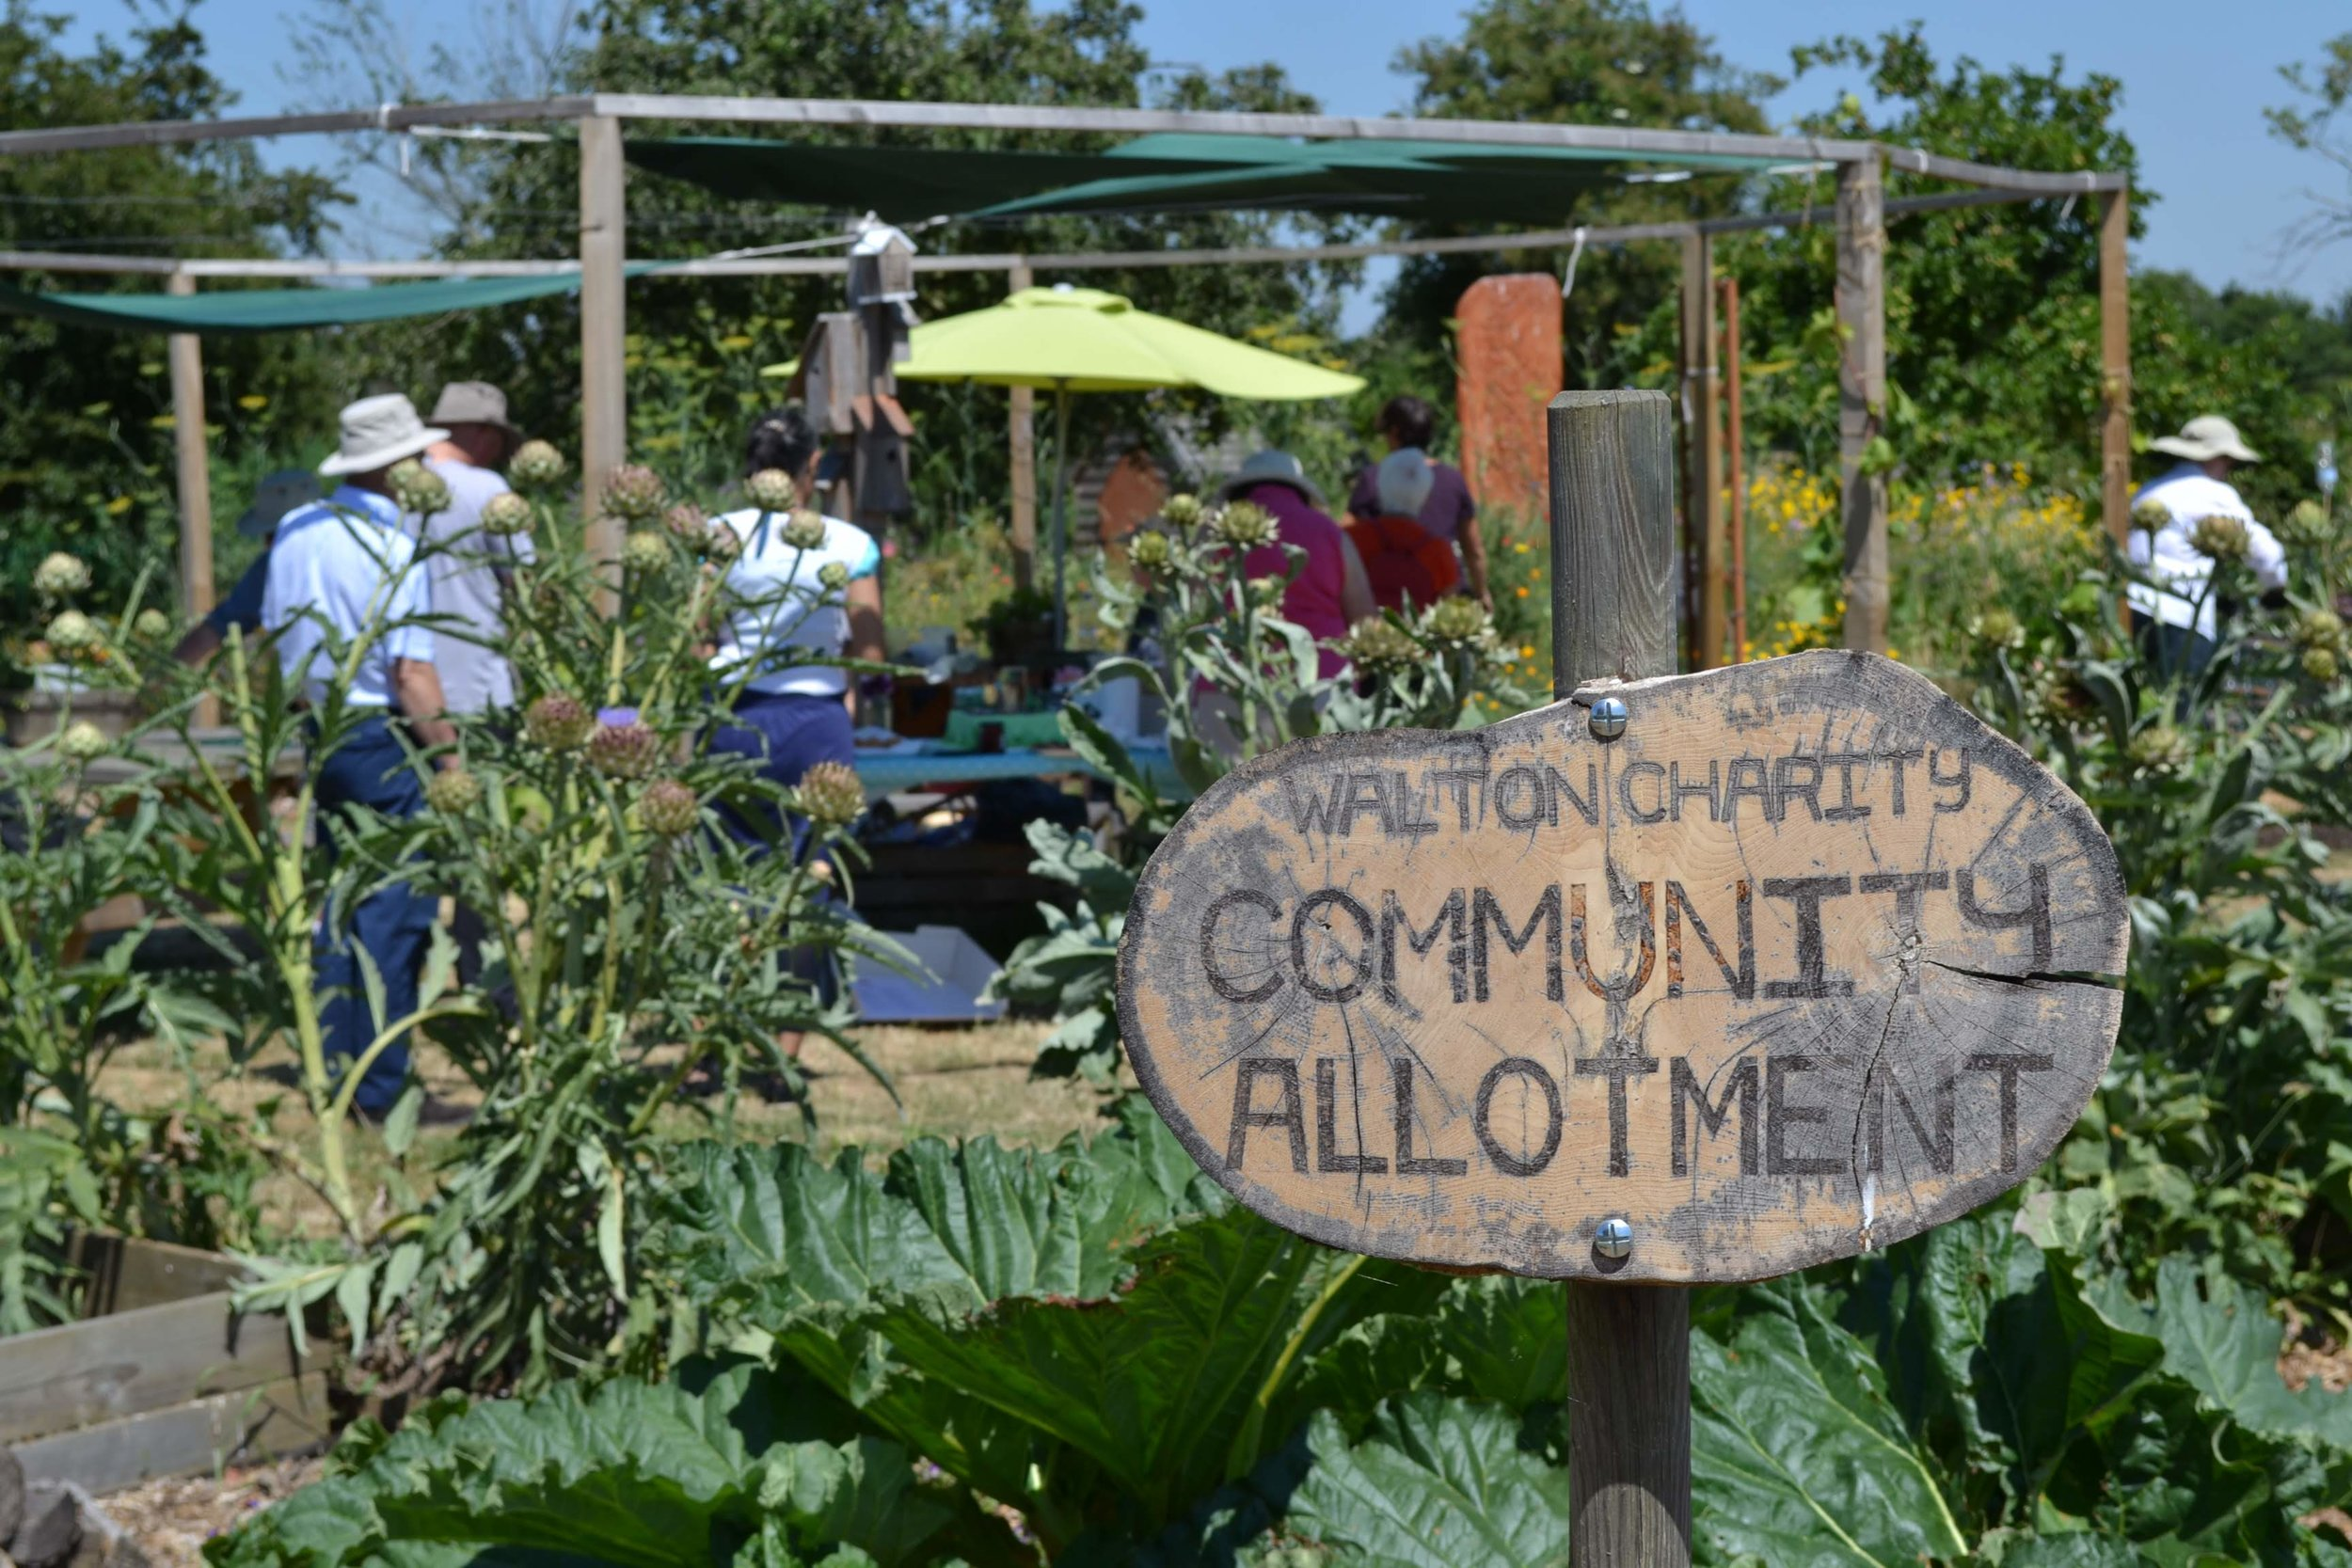 Community allotment -